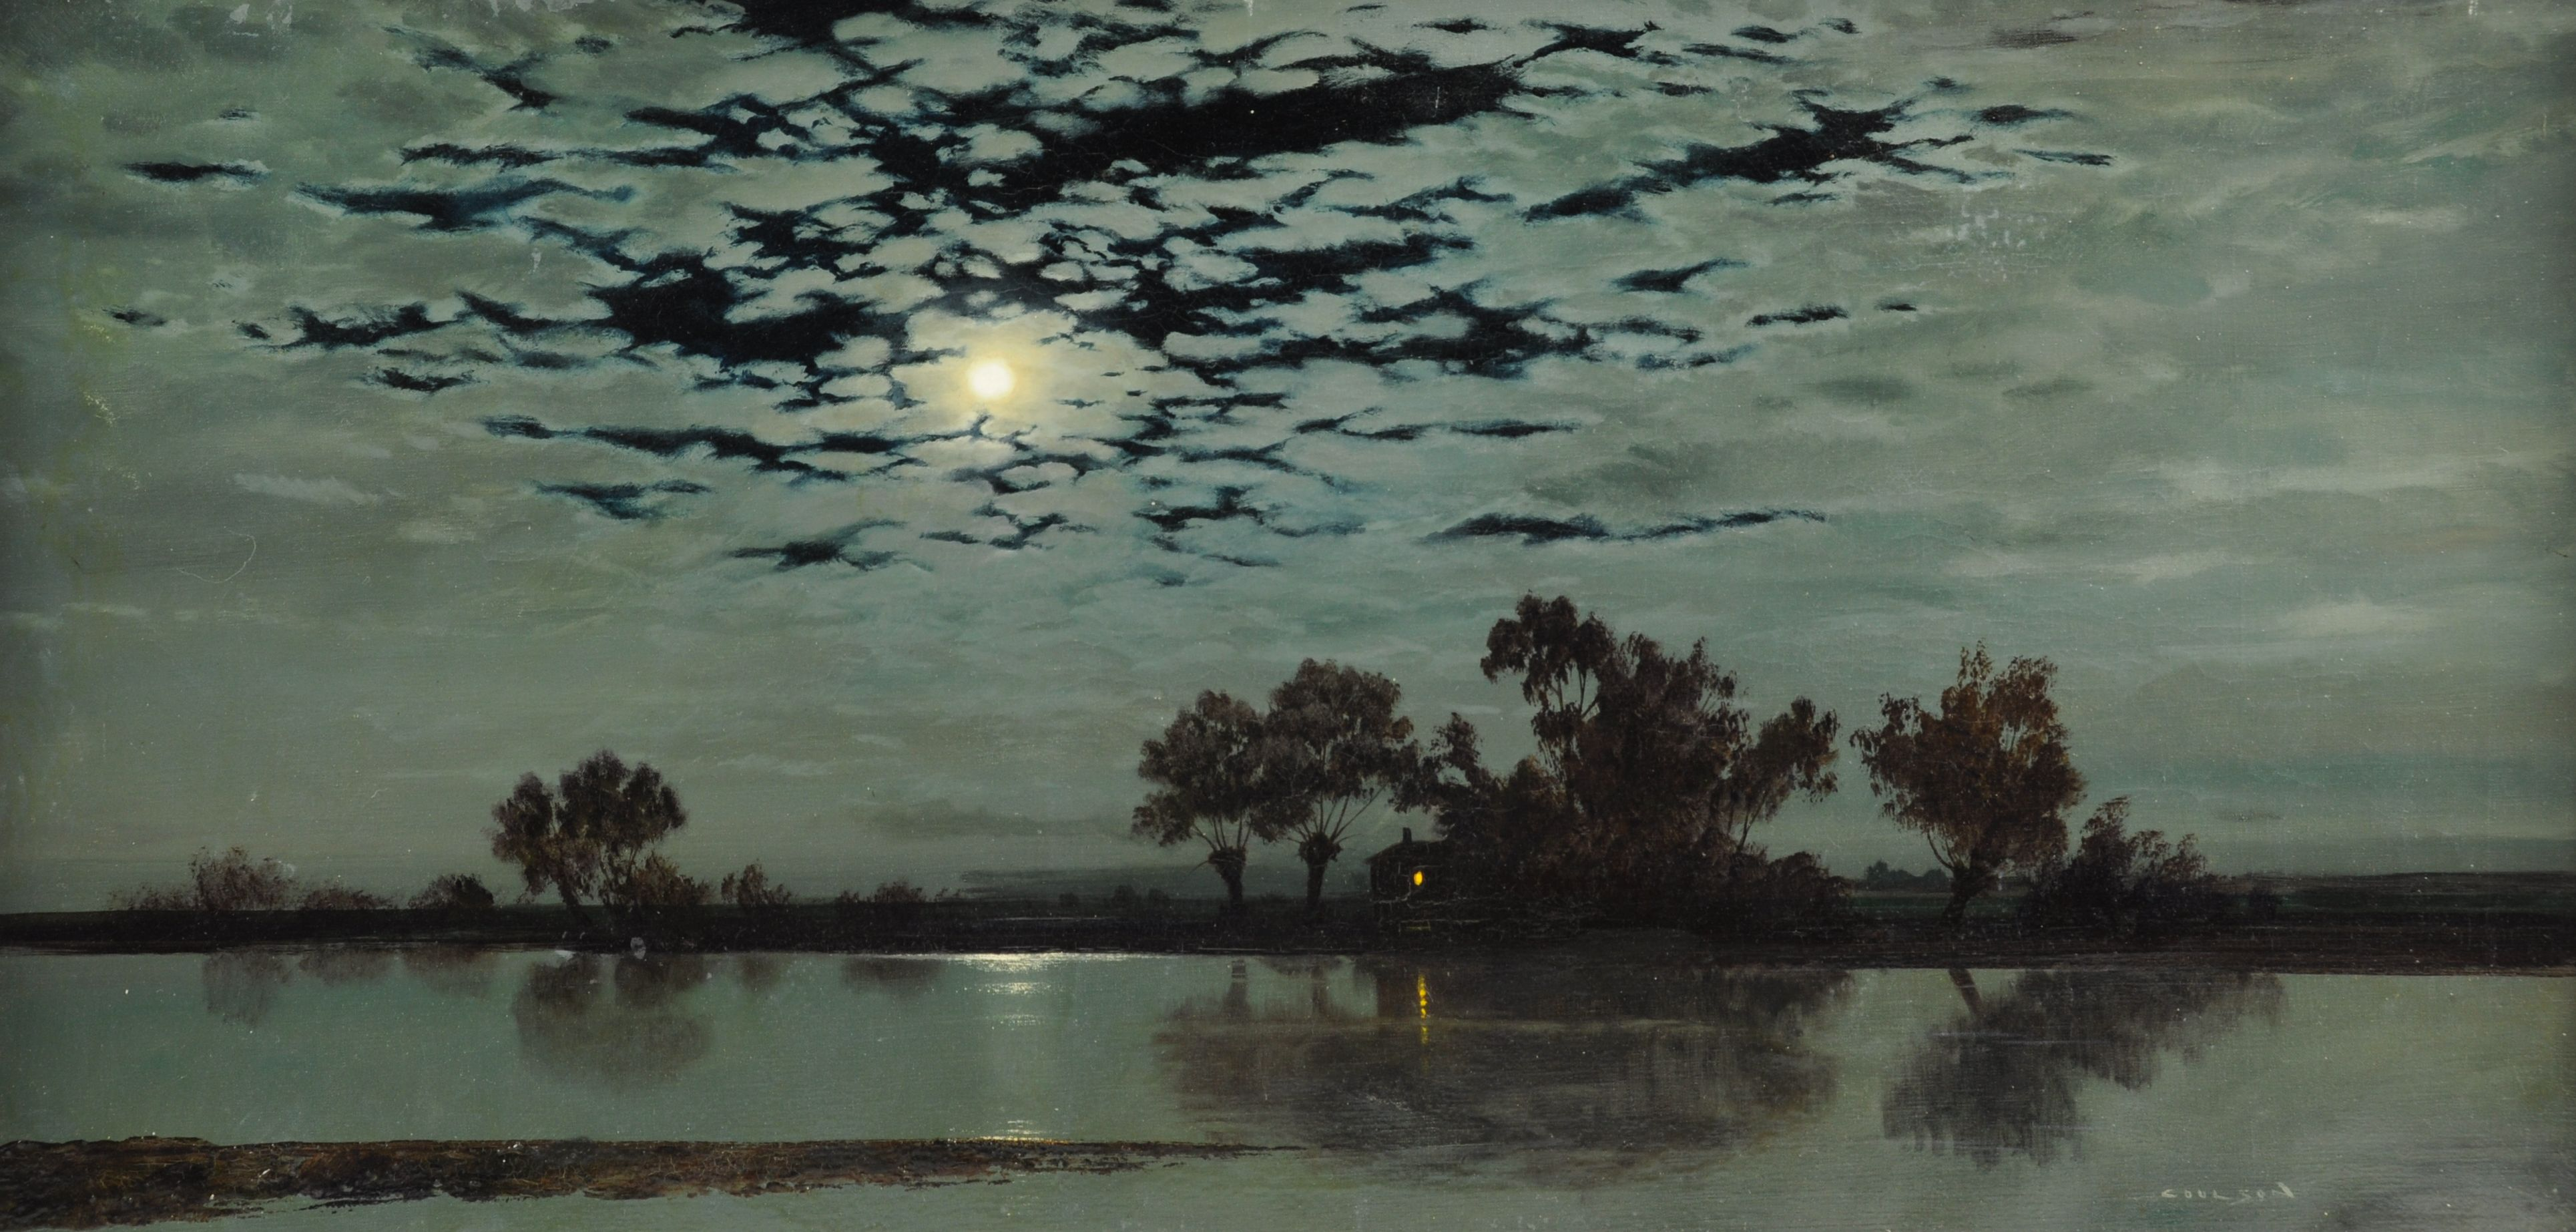 stars-moonlight-on-the-fens-g-coulson